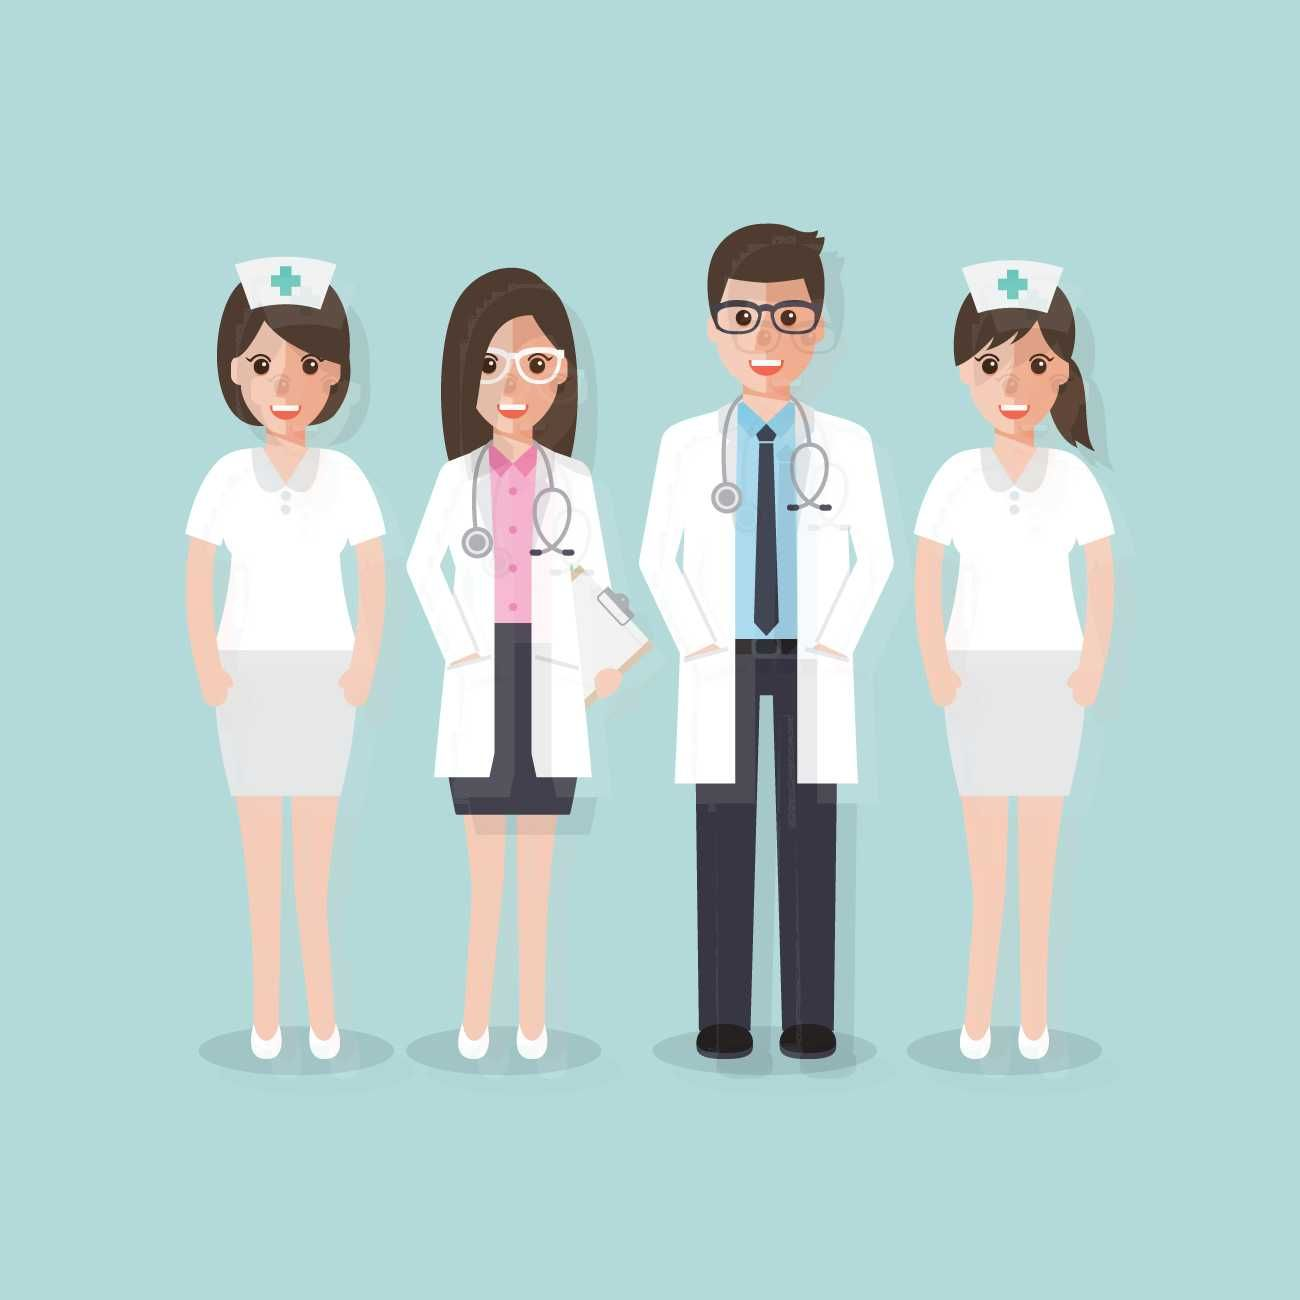 Team design free in. Teamwork clipart medical